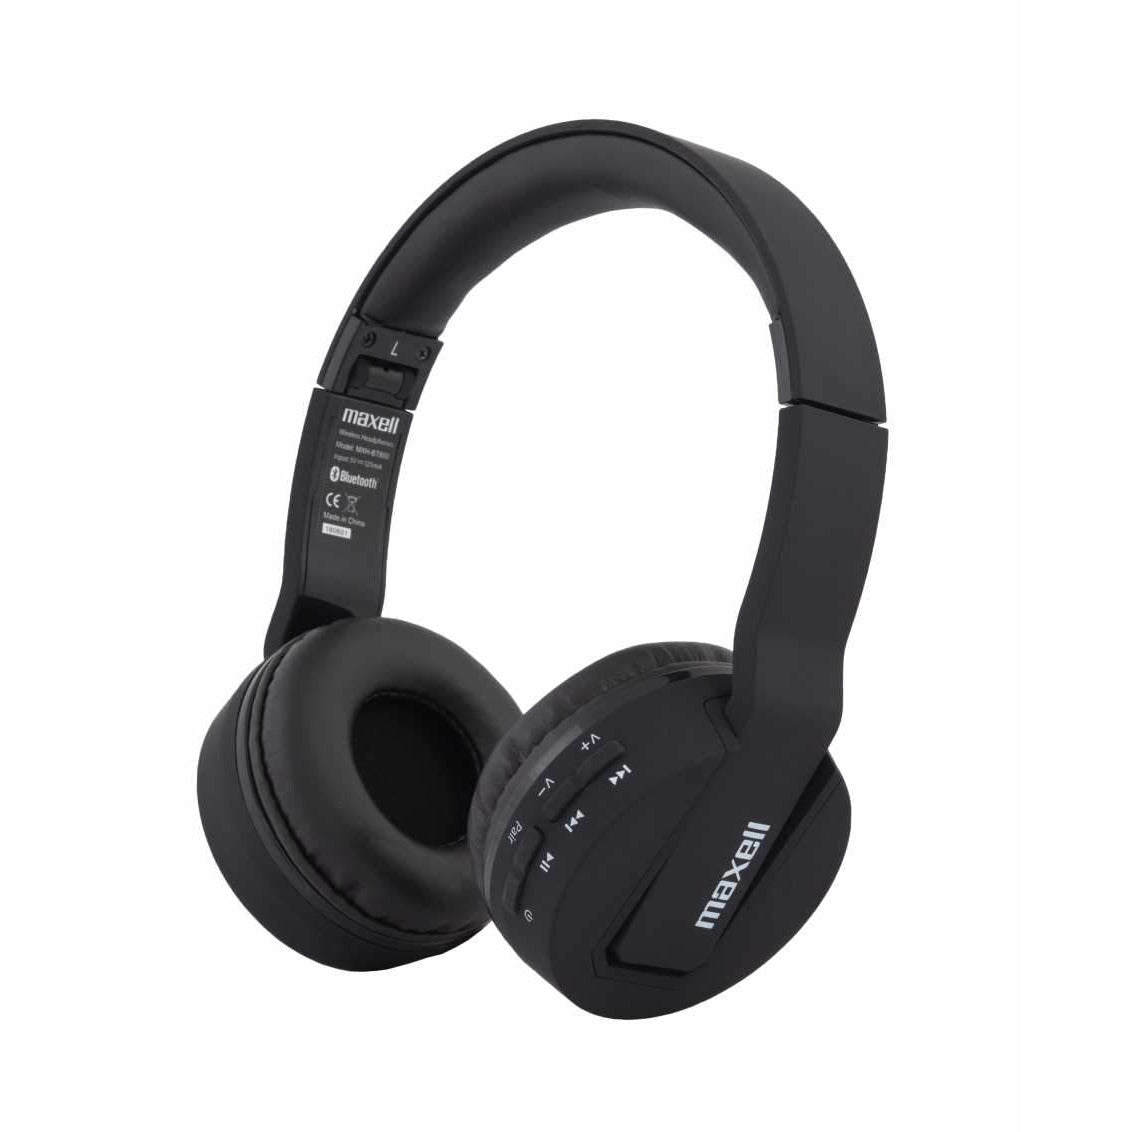 Maxell BT800 Headphones - Black [Accessories]